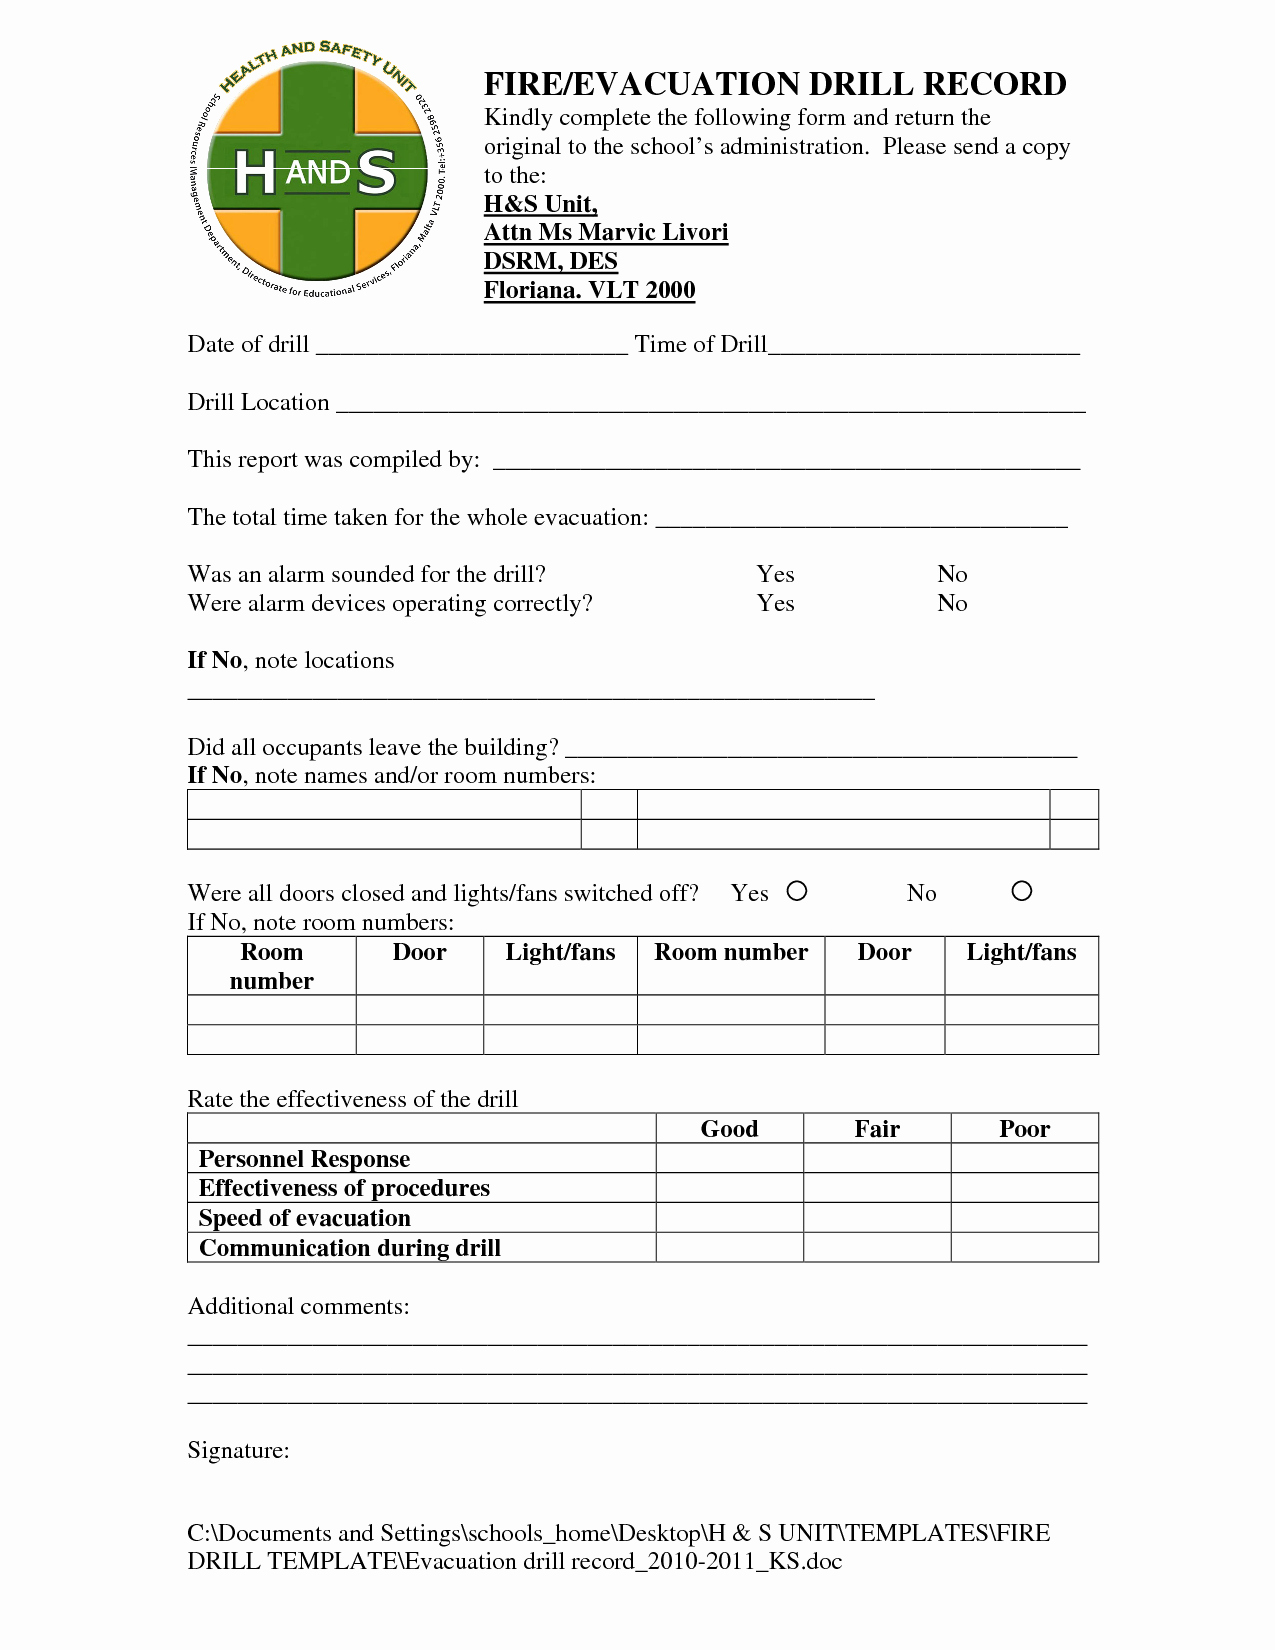 Fire Drill Report Template Luxury Best S Of Acsa Emergency Evacuation Drill form Fire